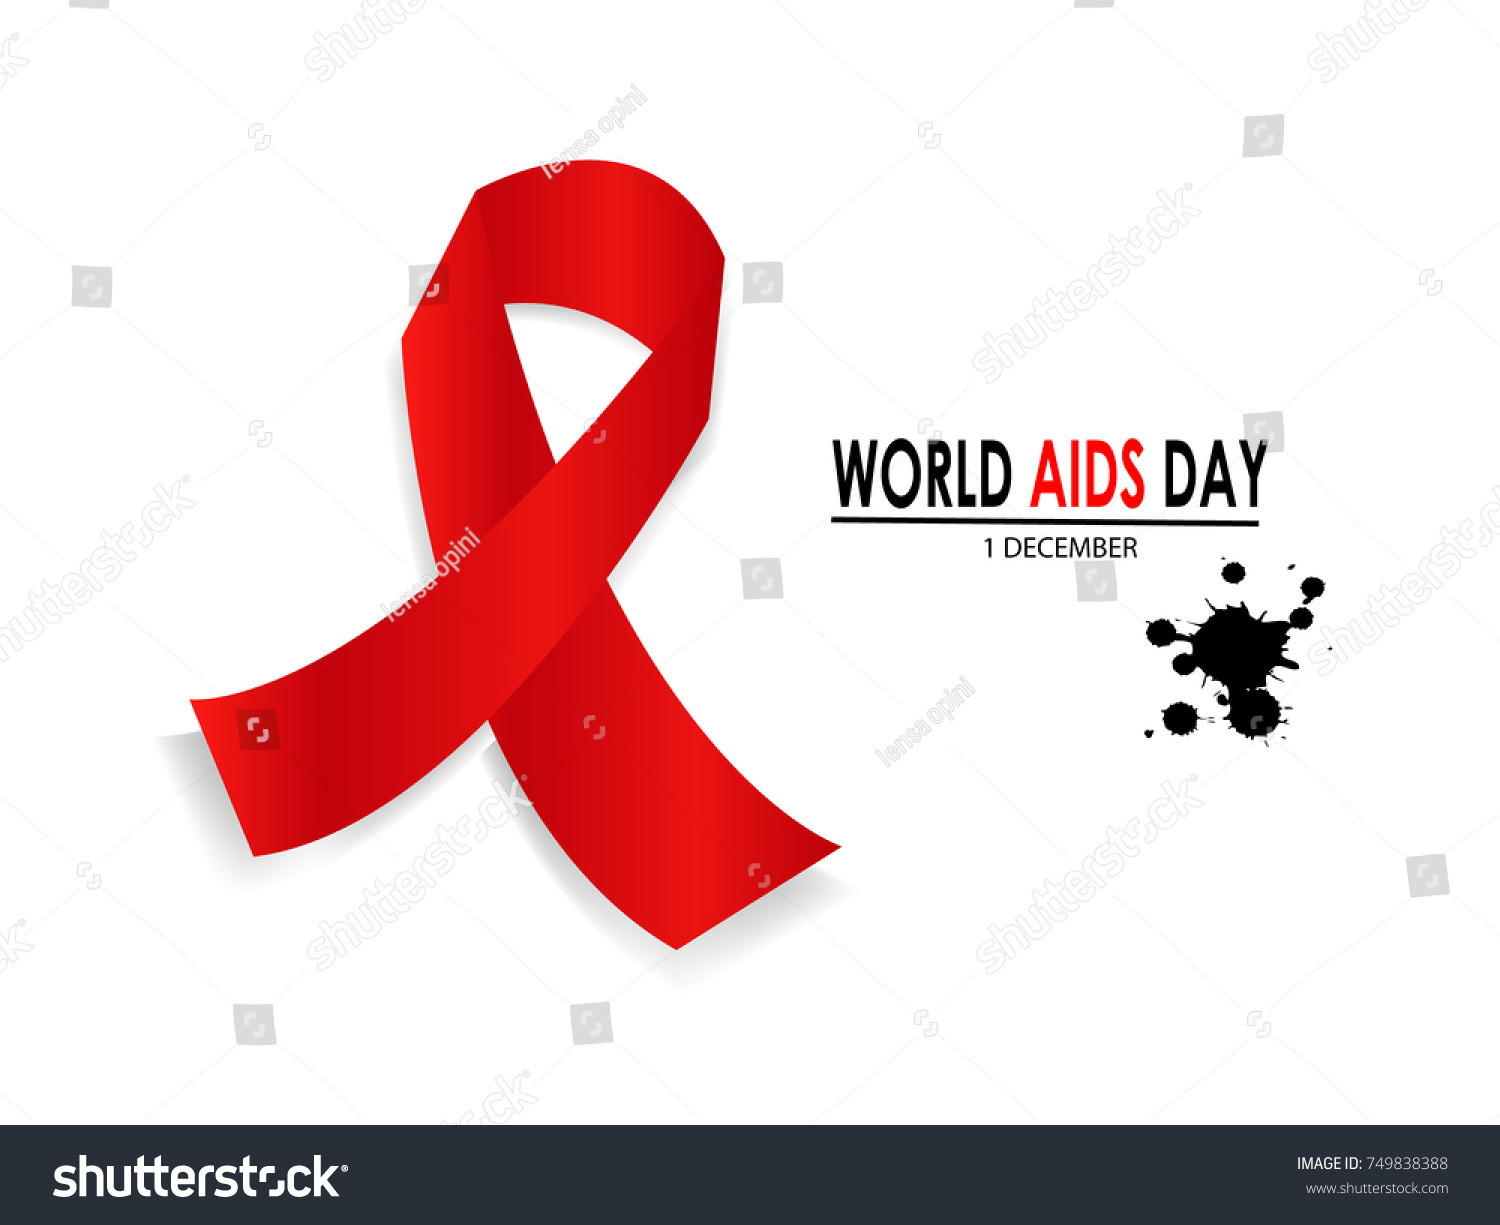 Red ribbon symbol world aids awareness stock vector 749838388 red ribbon symbol for world aids awareness day 1 december isolated background buycottarizona Image collections